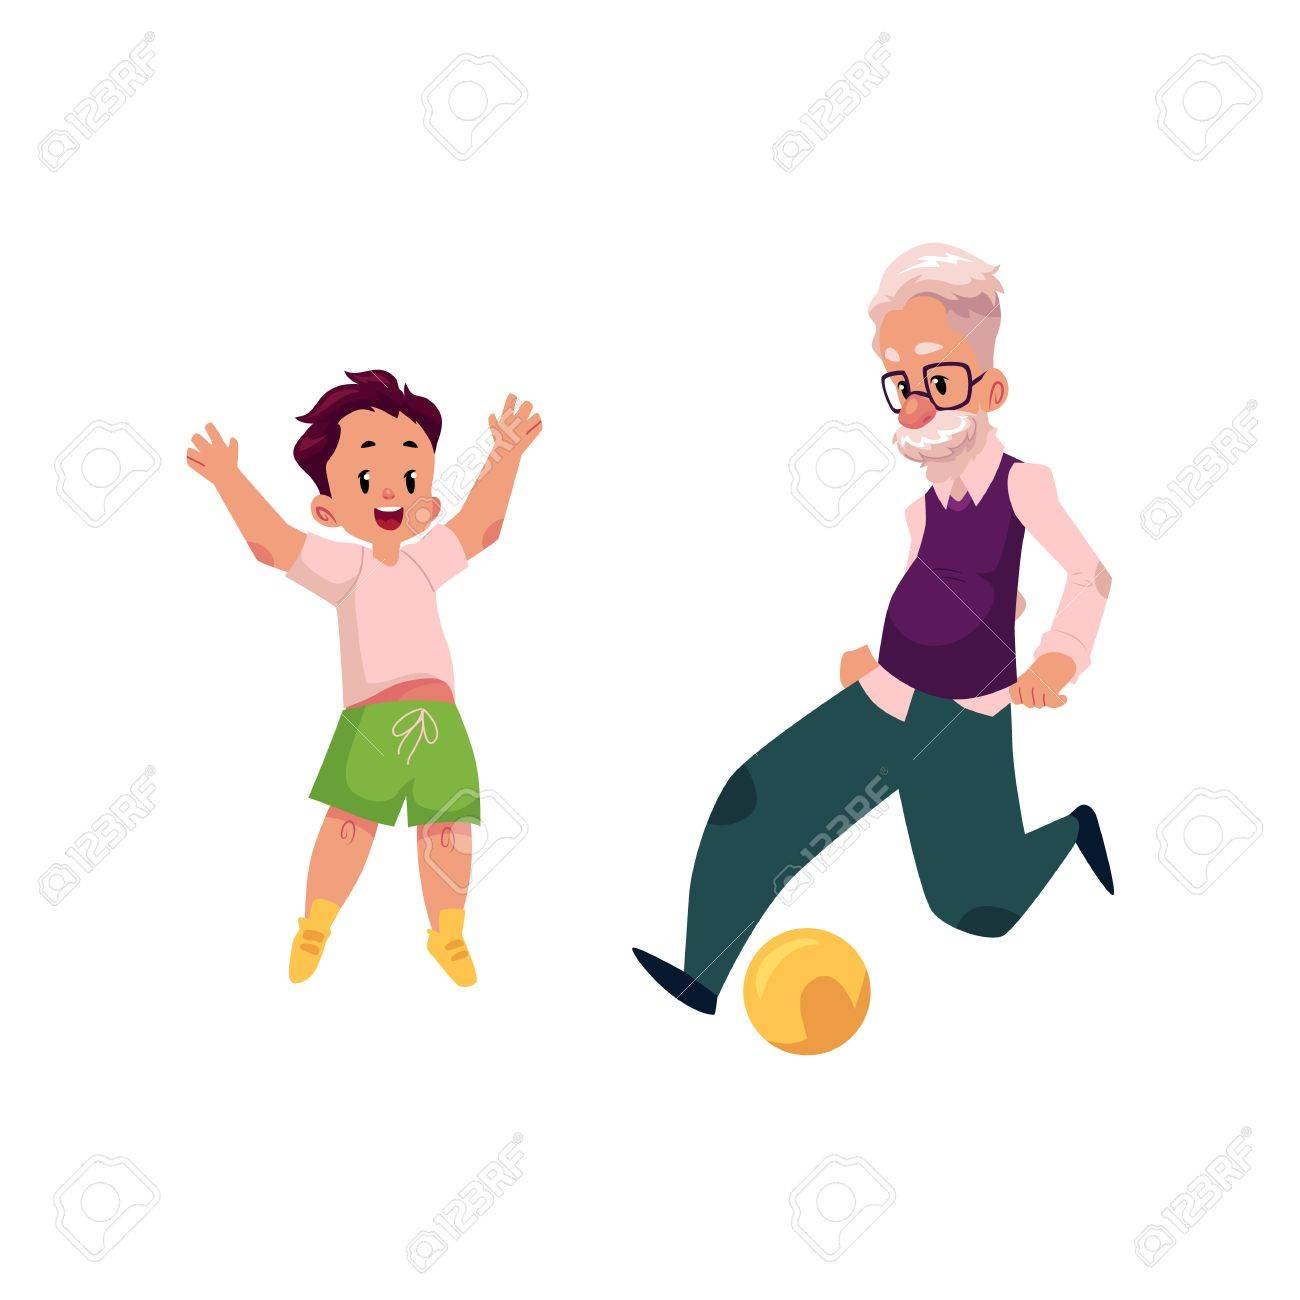 Grandfather, old man playing football with his grandson, teenage boy, cartoon vector illustration isolated on white background. Granddad grandparent and grandson playing football, happy family concept - 87470487